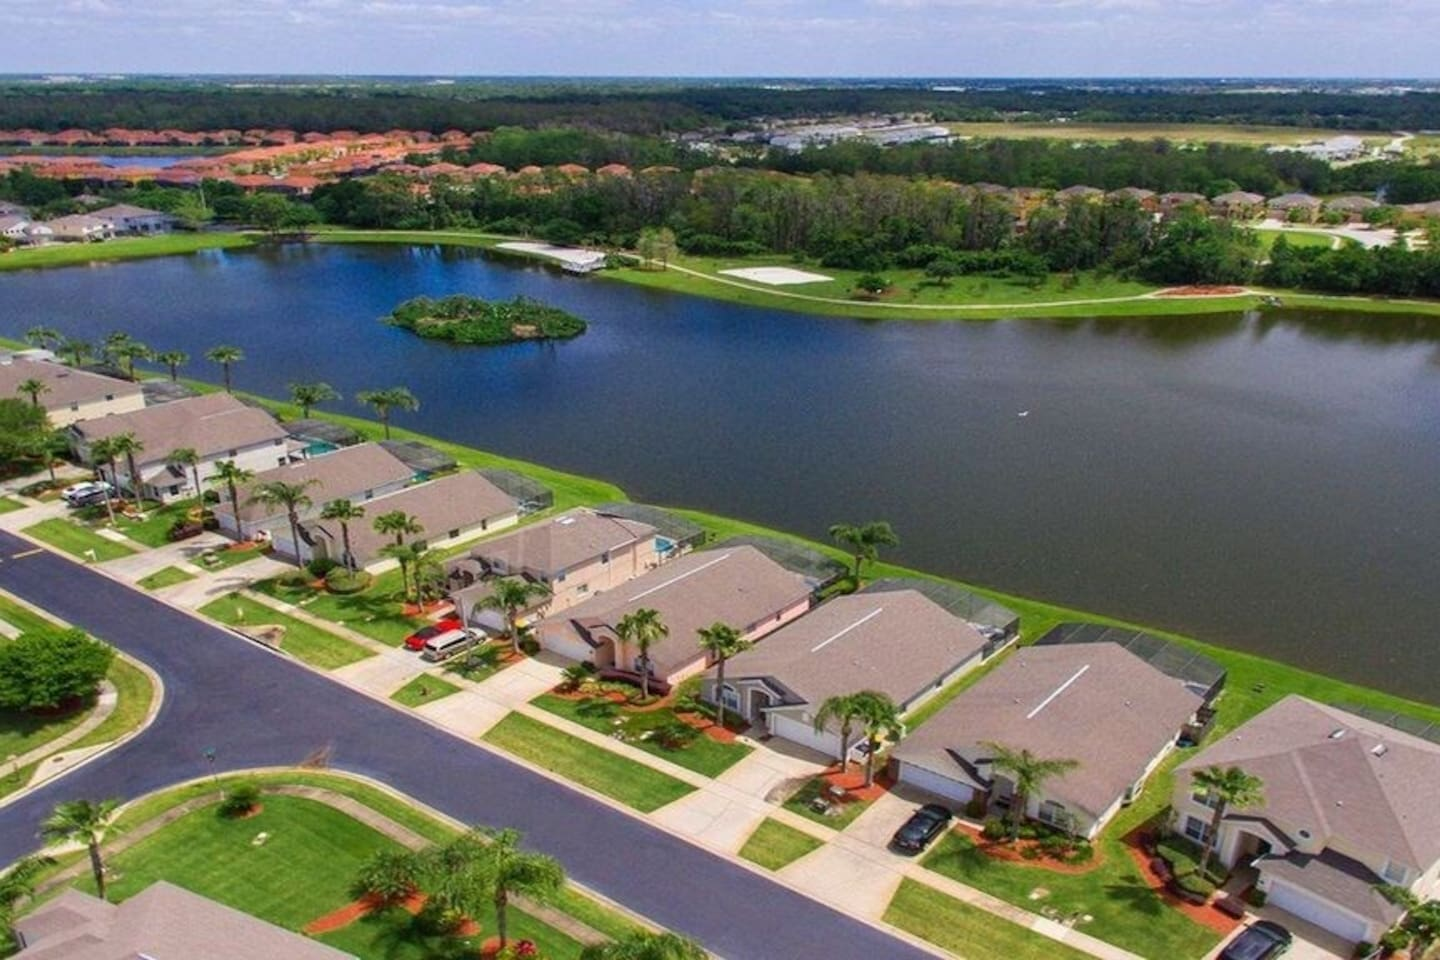 Your villa is on Lake Berkley Resort with 3 lakes